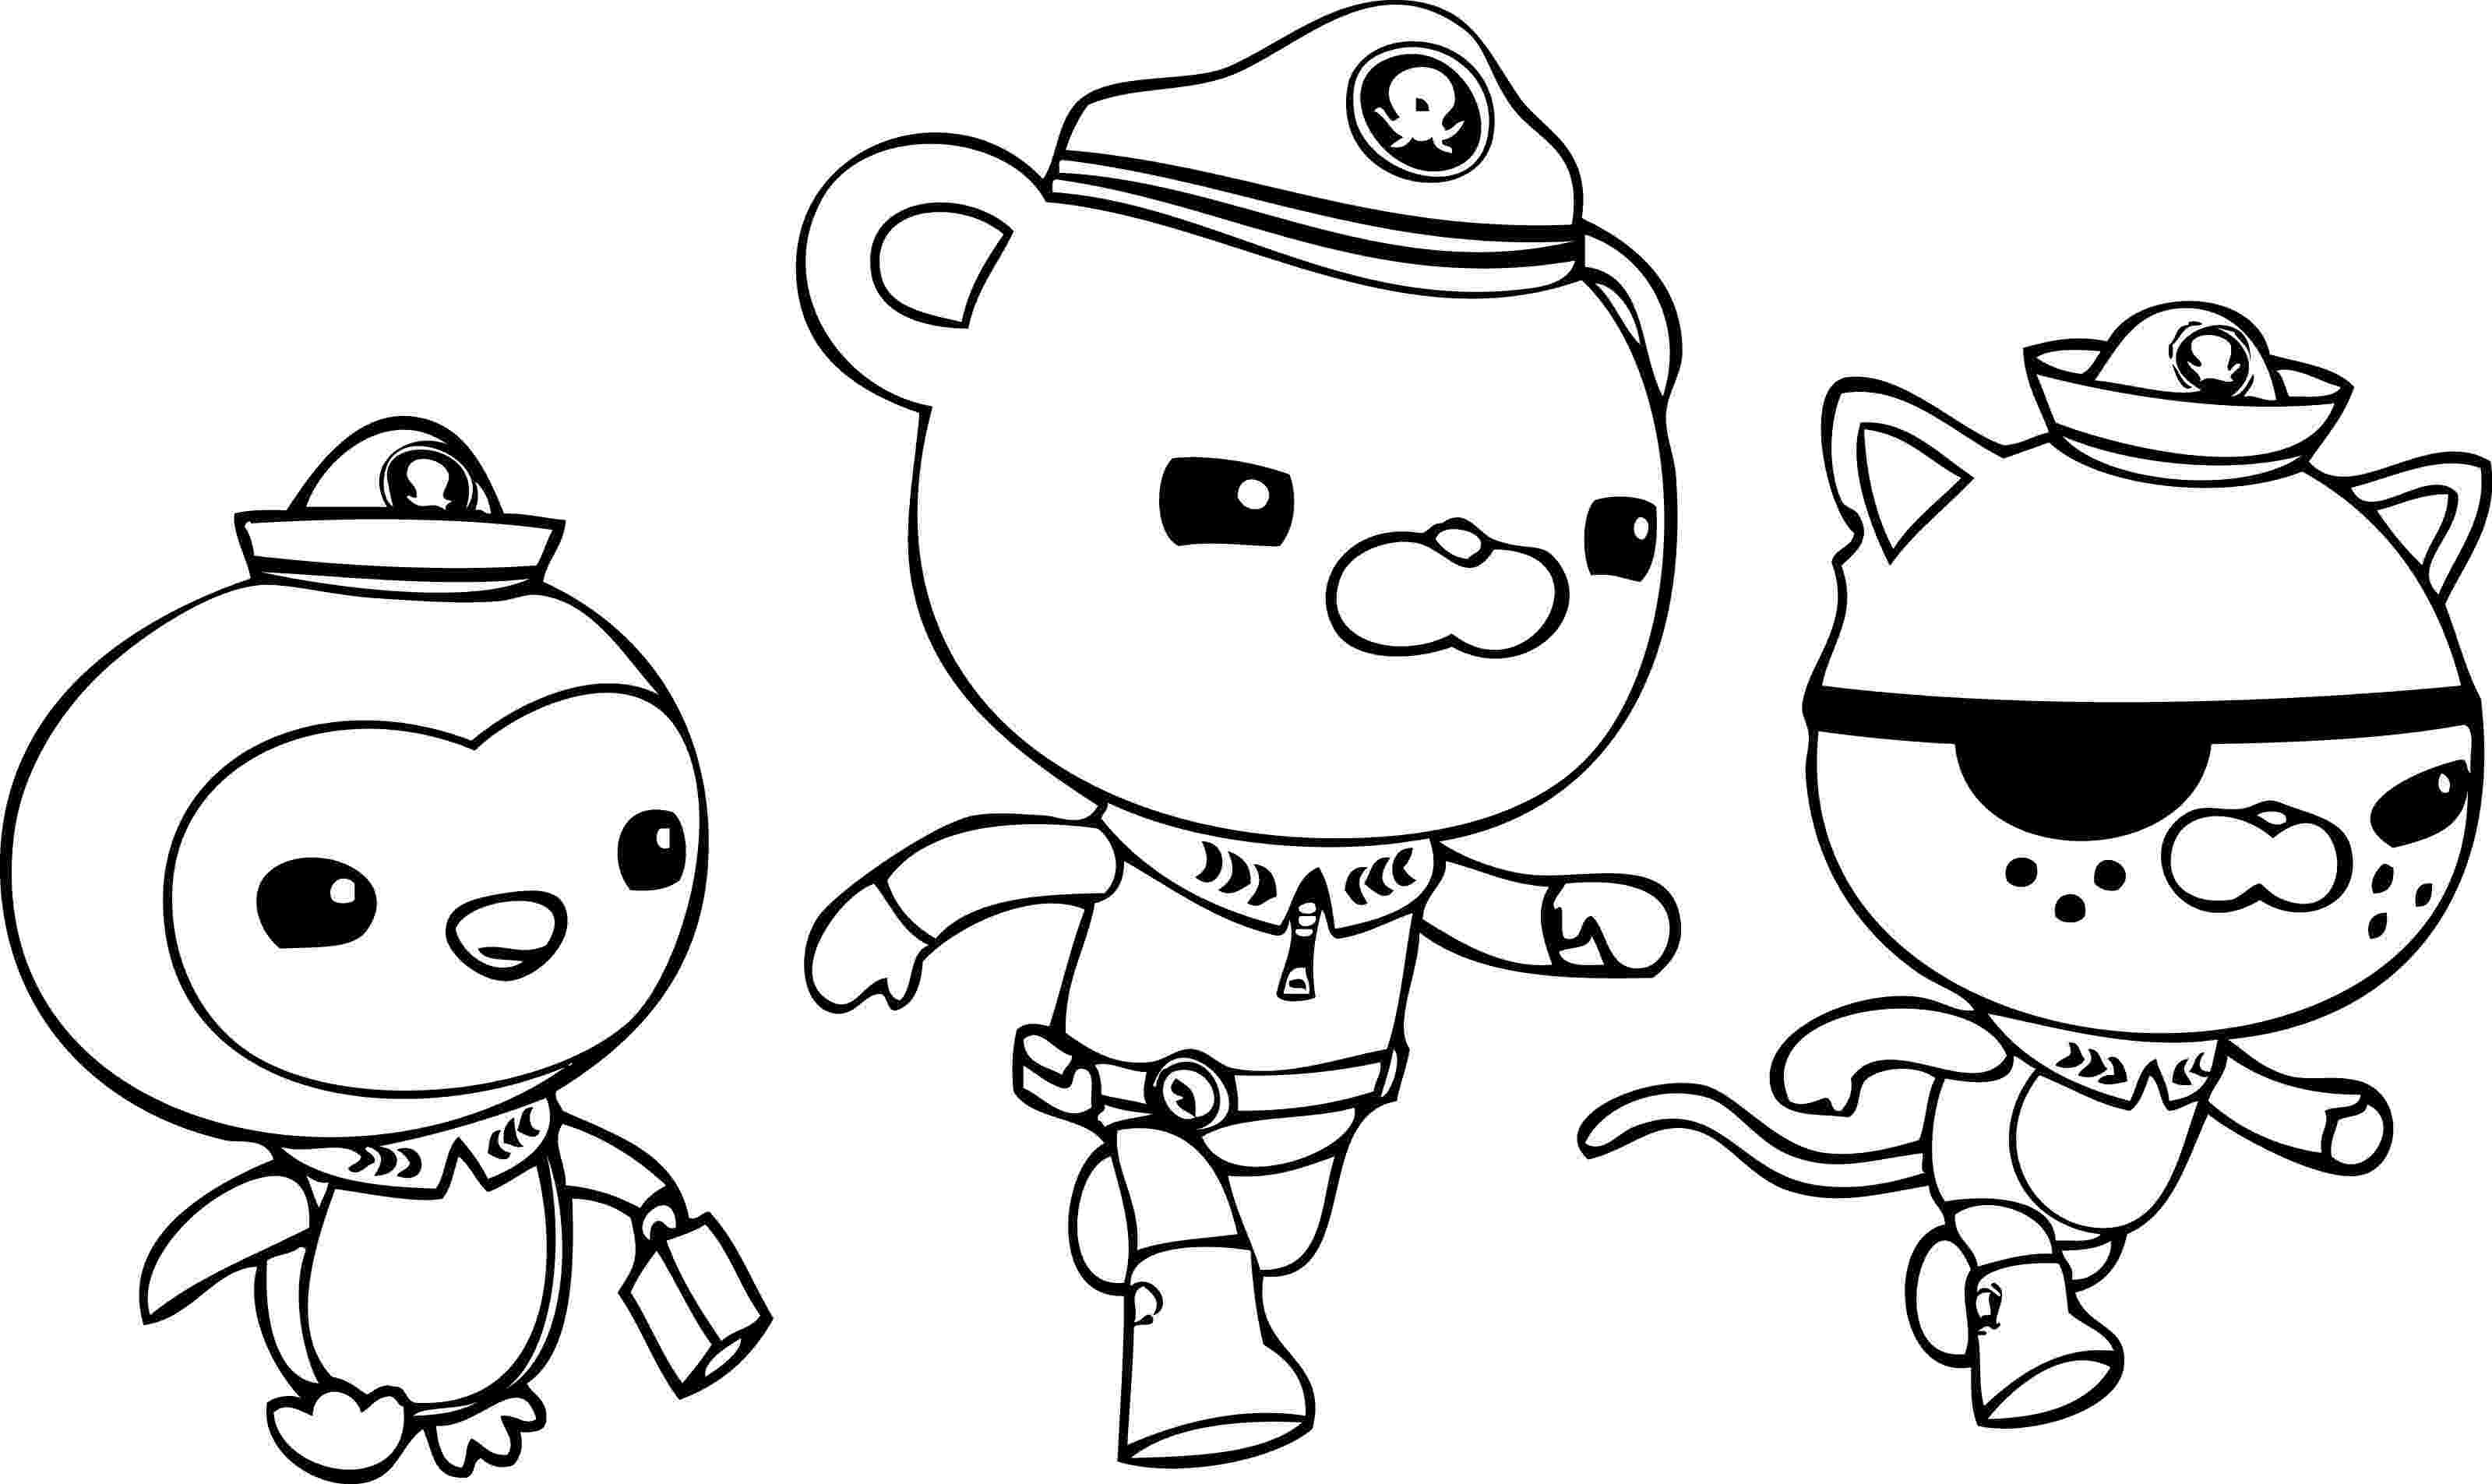 octonauts colouring print download octonauts coloring pages for your kids octonauts colouring